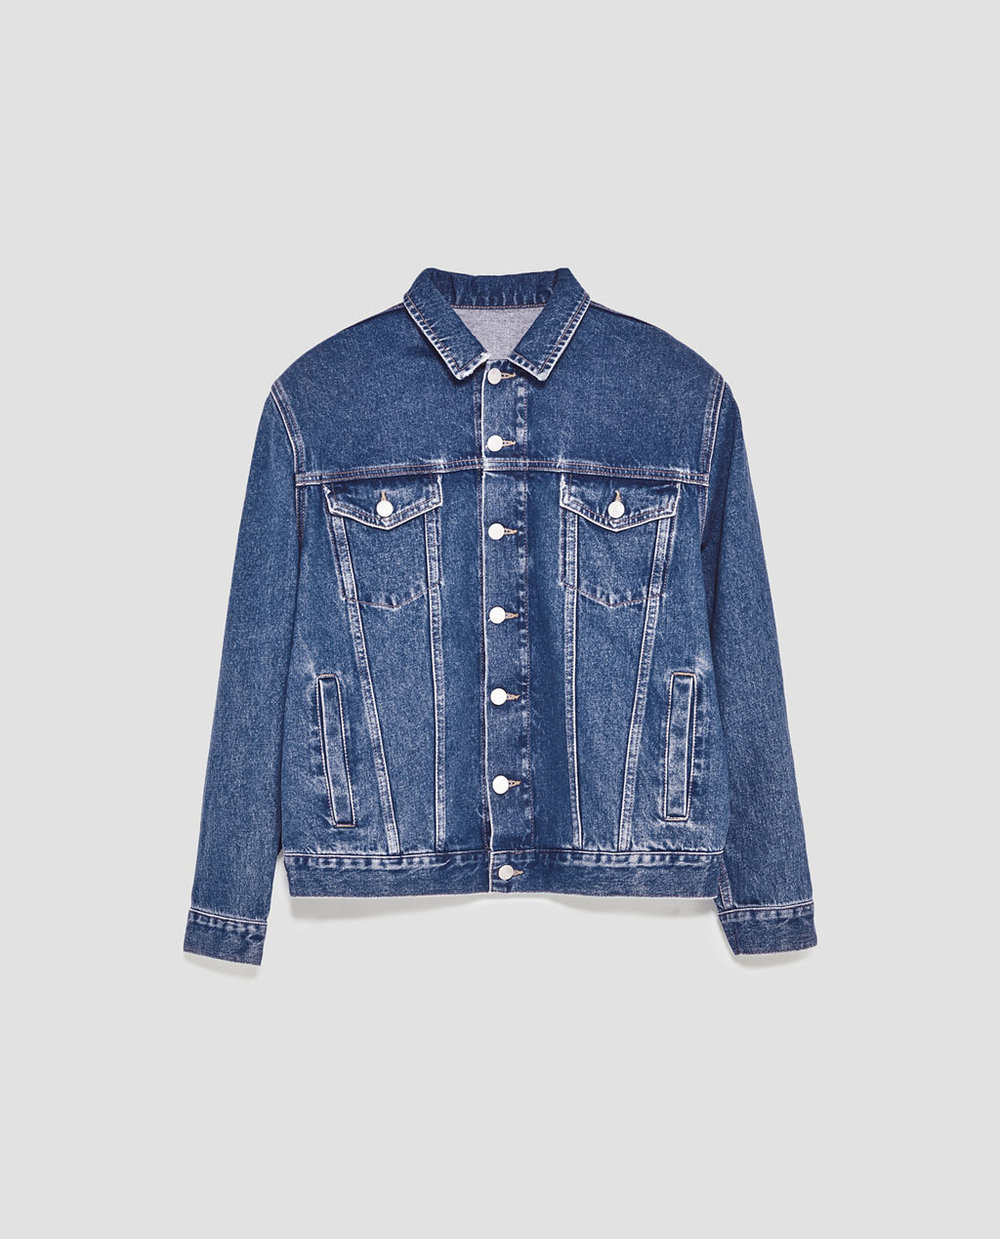 denim jacket with shoulder pads $70